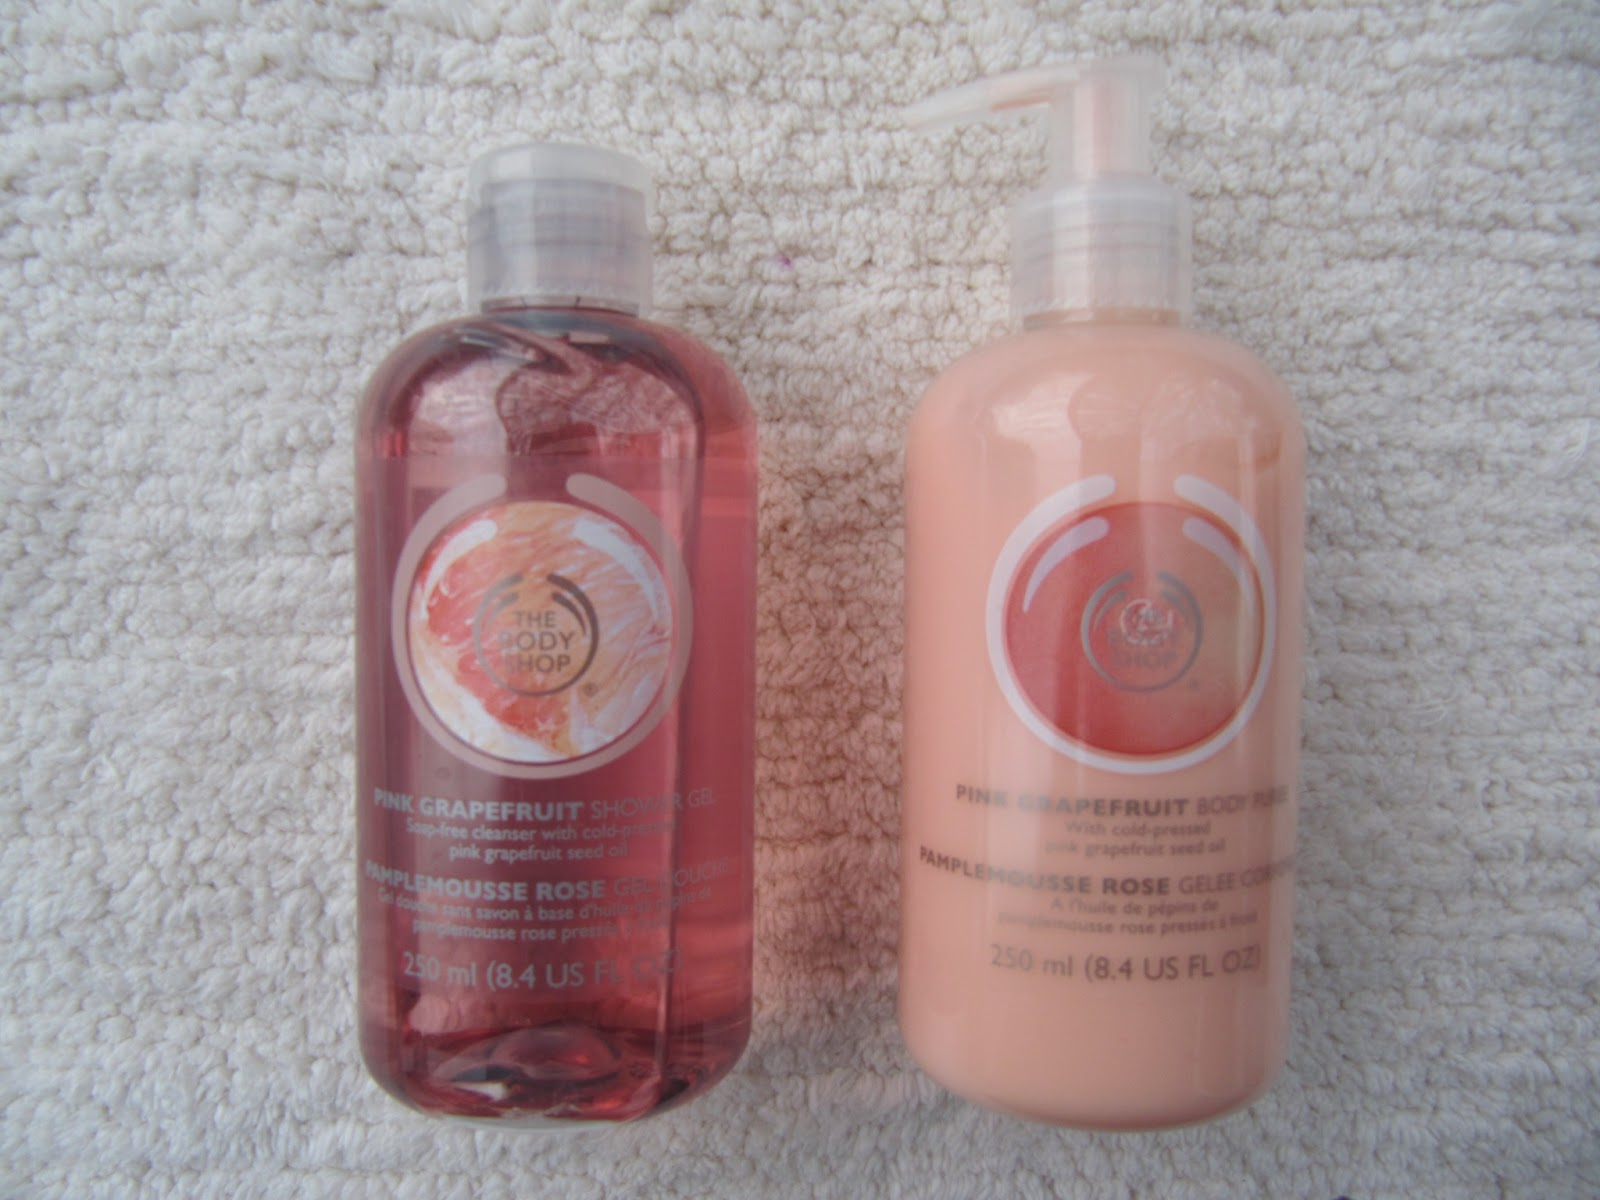 the body shop pink grapefruit shower gel u0026 pink grapefruit puree body lotion review